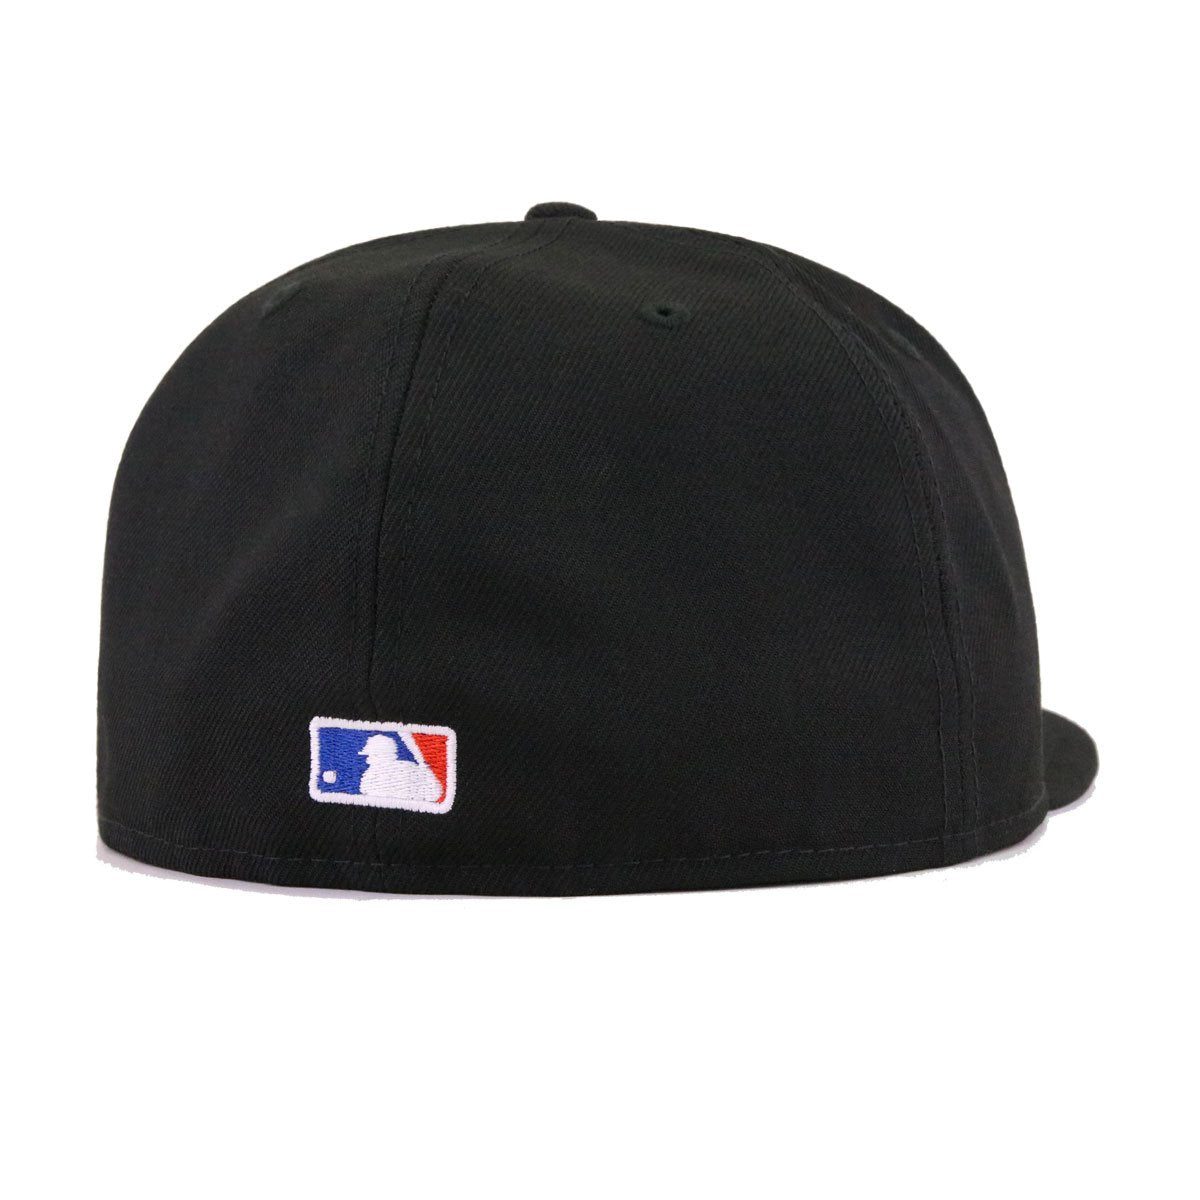 New York Mets Black Alternate 59Fifty Fitted